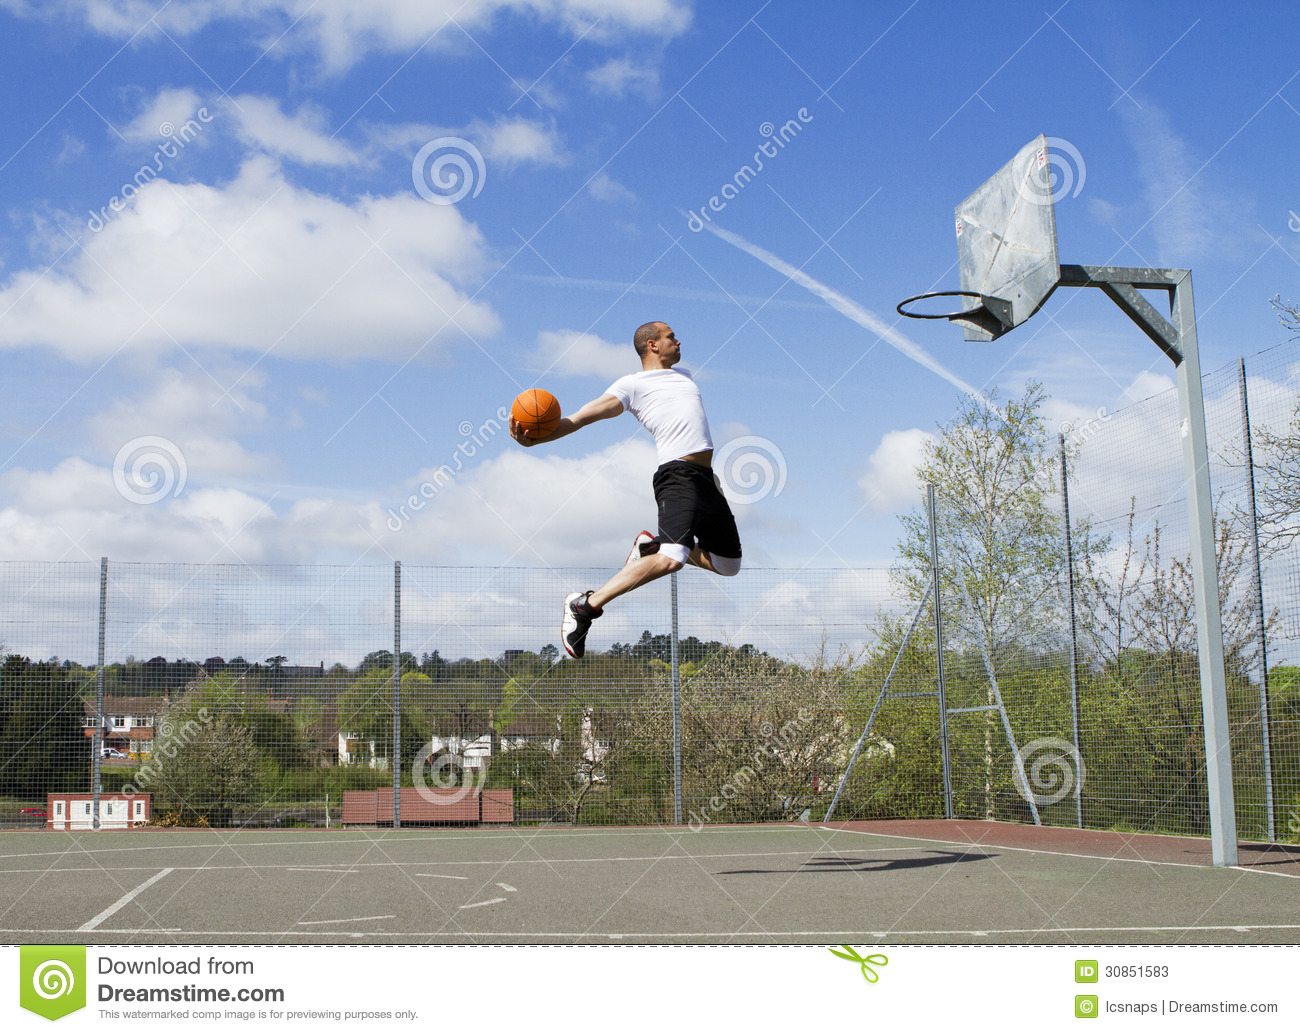 Basketball-Slam Dunk